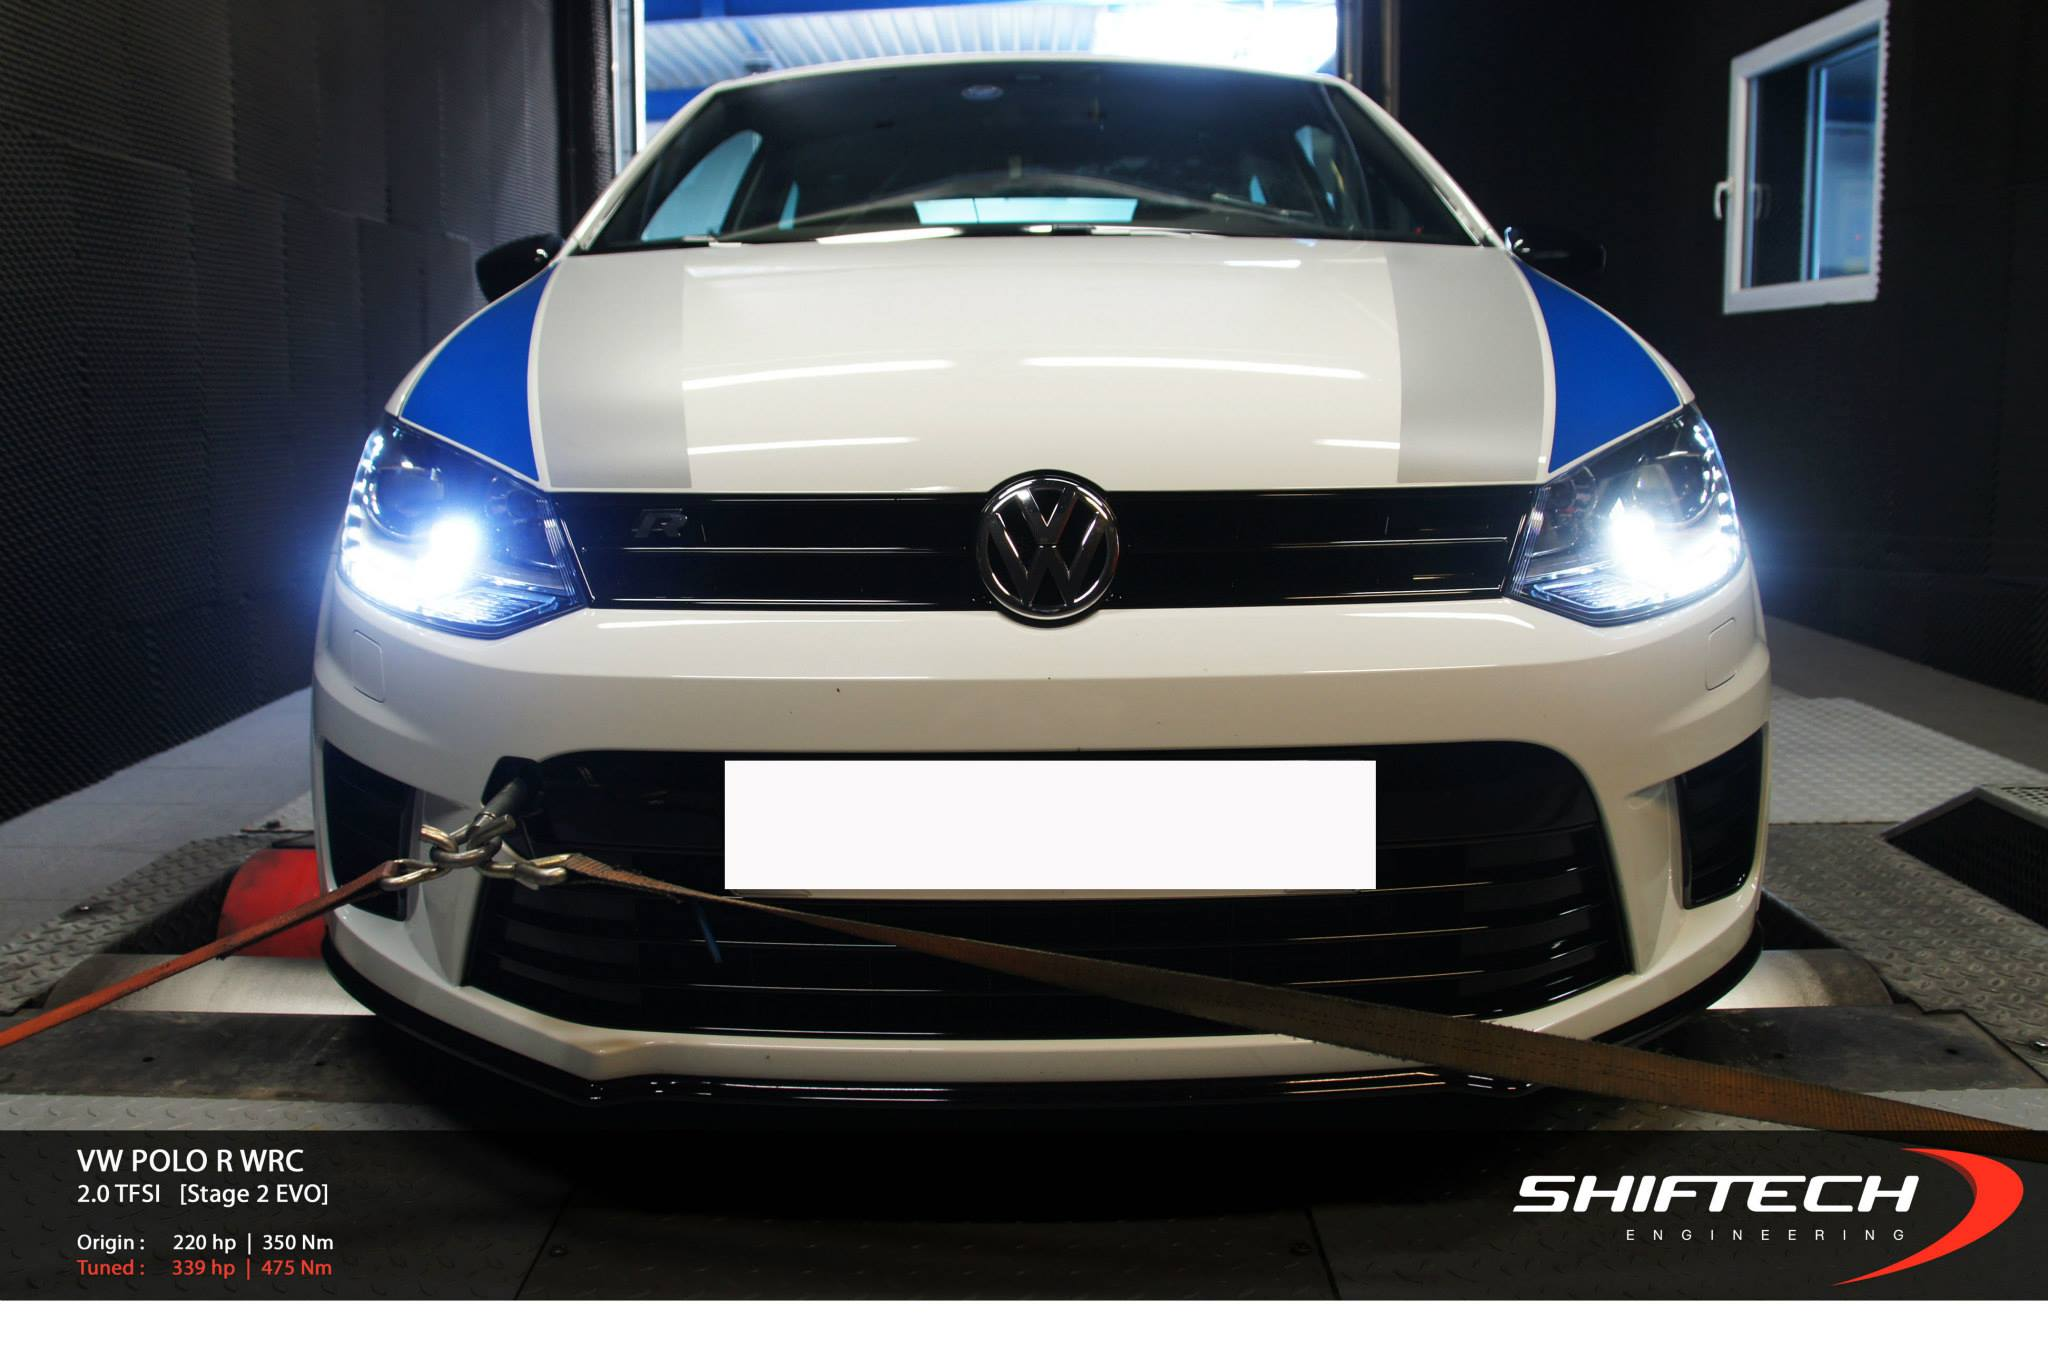 vw polo r wrc tuned to 339 hp autoevolution. Black Bedroom Furniture Sets. Home Design Ideas